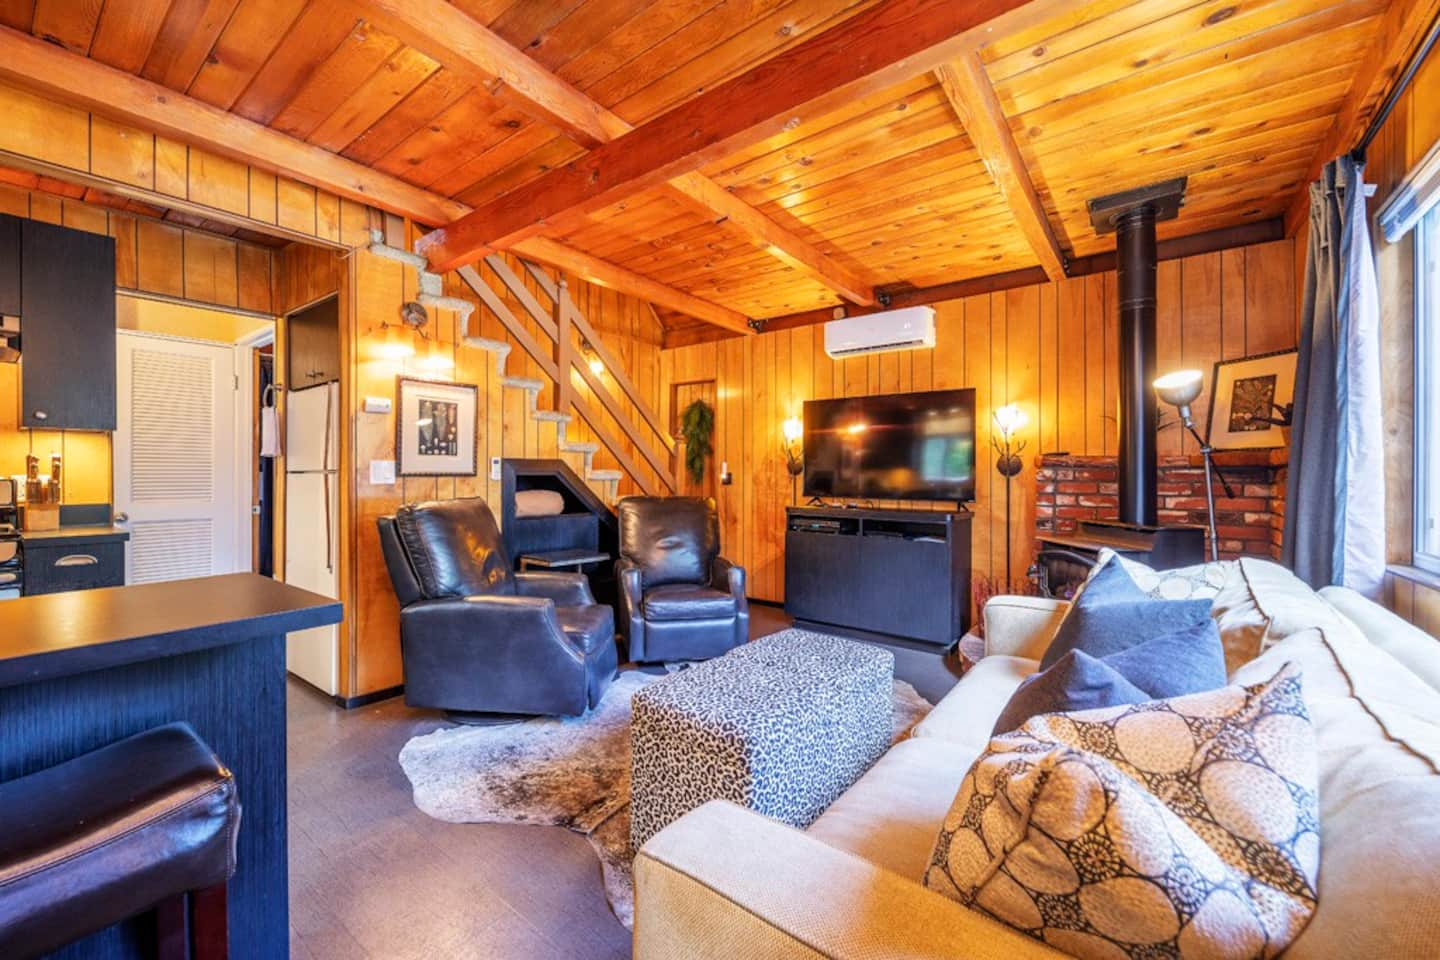 Cozy Chic Sherwood Enclave in Big Bear California